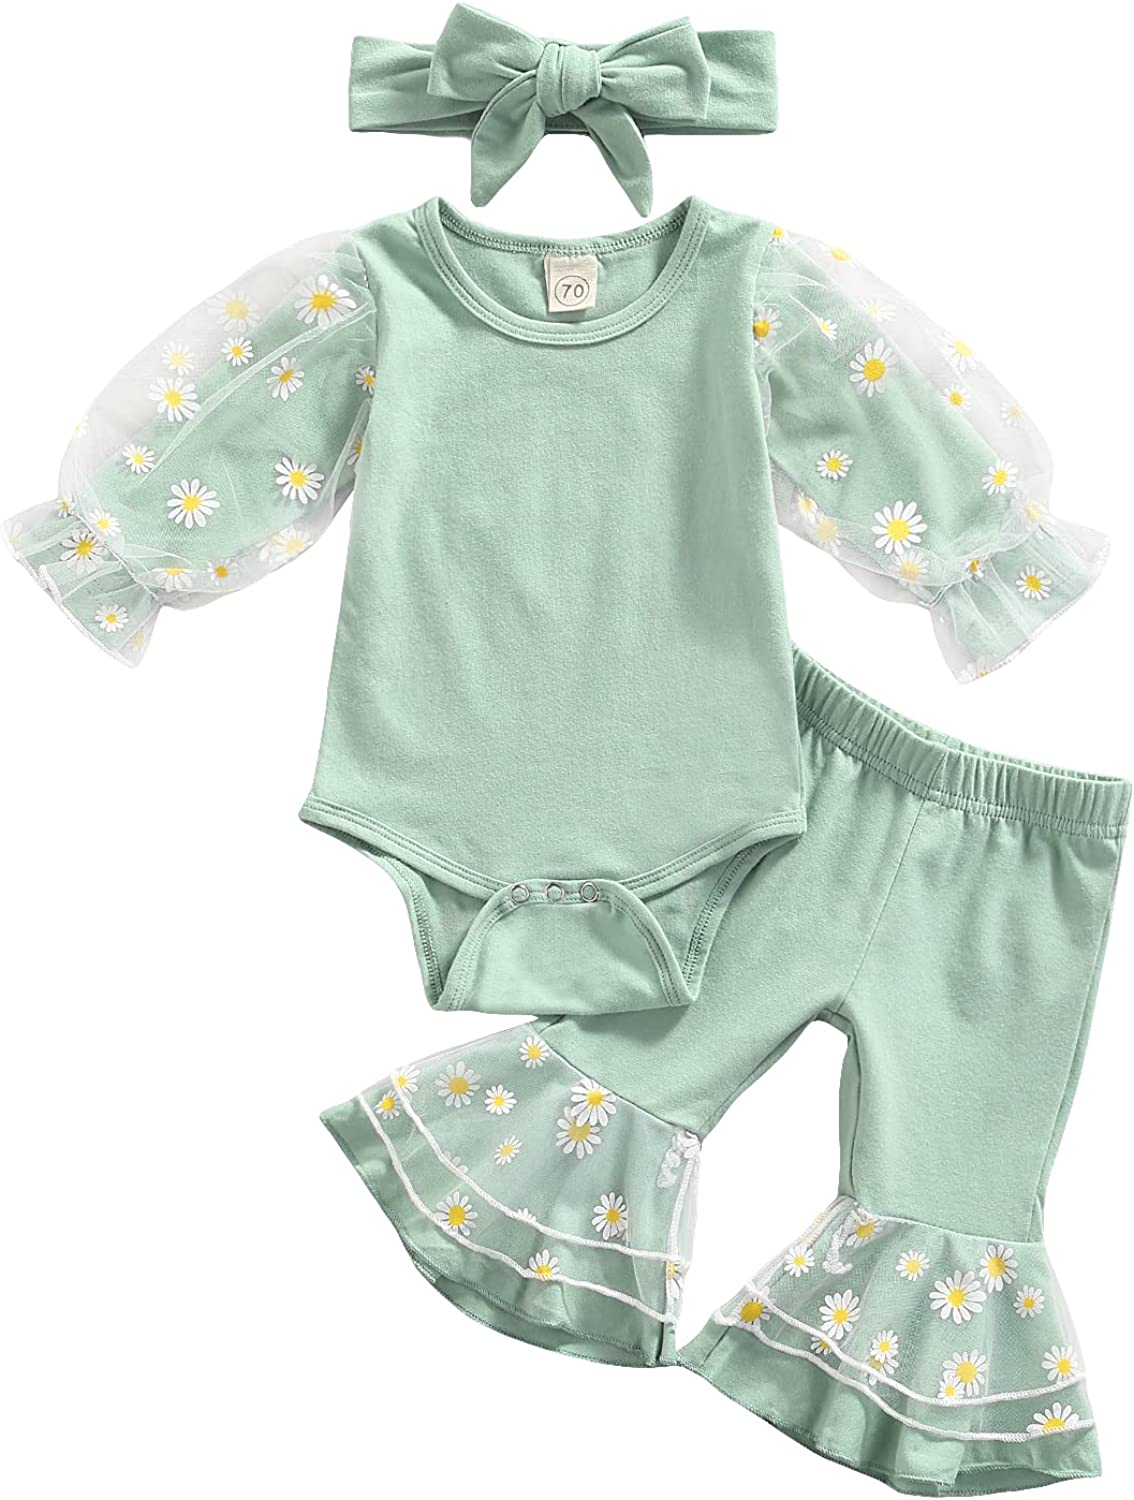 3 Pcs Daisy Pattern Outfits Baby Girls Mesh Patchwork Playsuit Flared Pants Headband: Clothing, Shoes & Jewelry